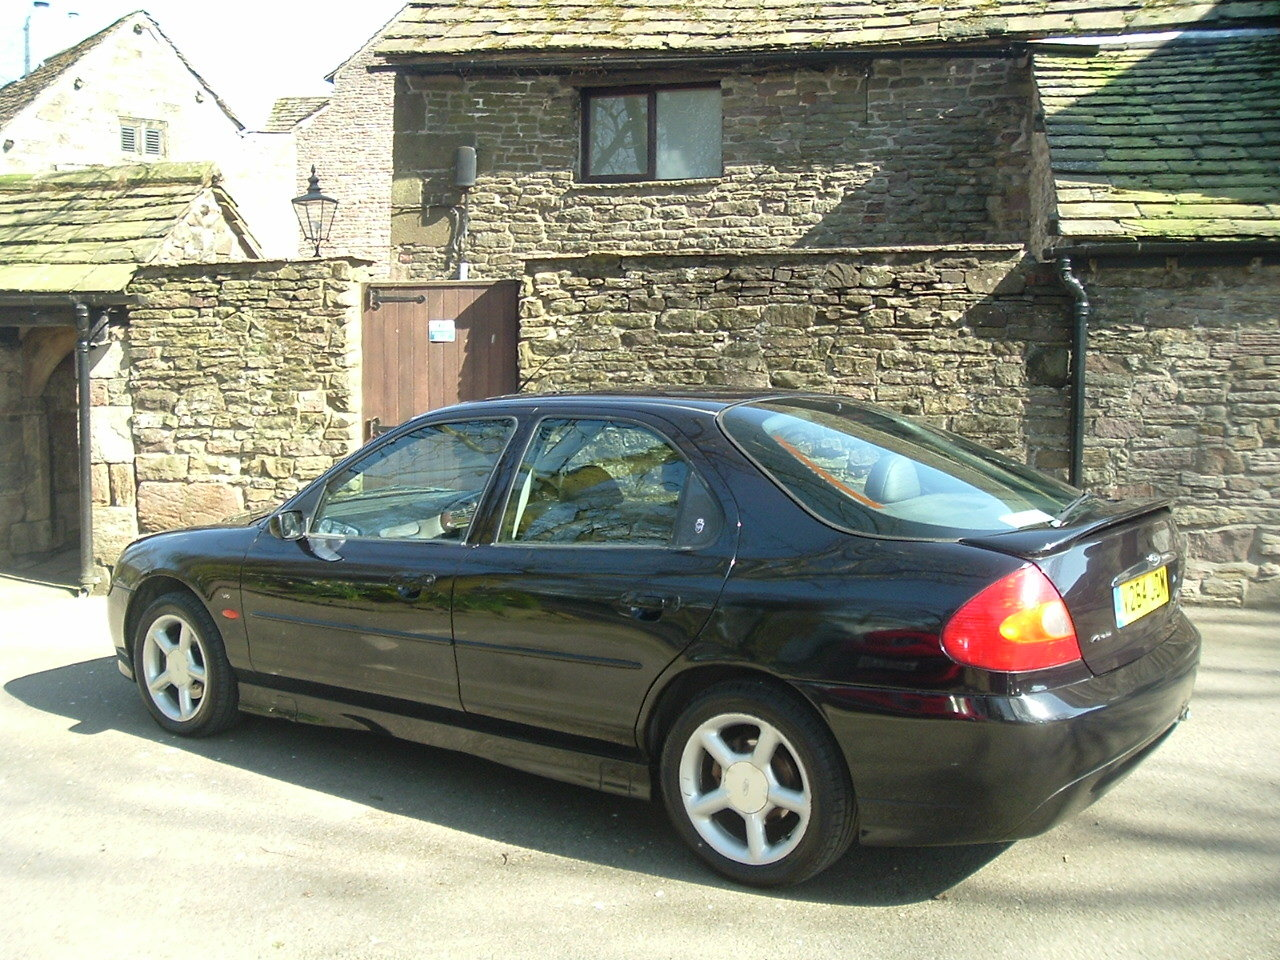 1999 99/V Mondeo Mk2 2.5 V6 Ghia X Manual. 64k Miles/1 Owner/FFSH For Sale (picture 3 of 6)